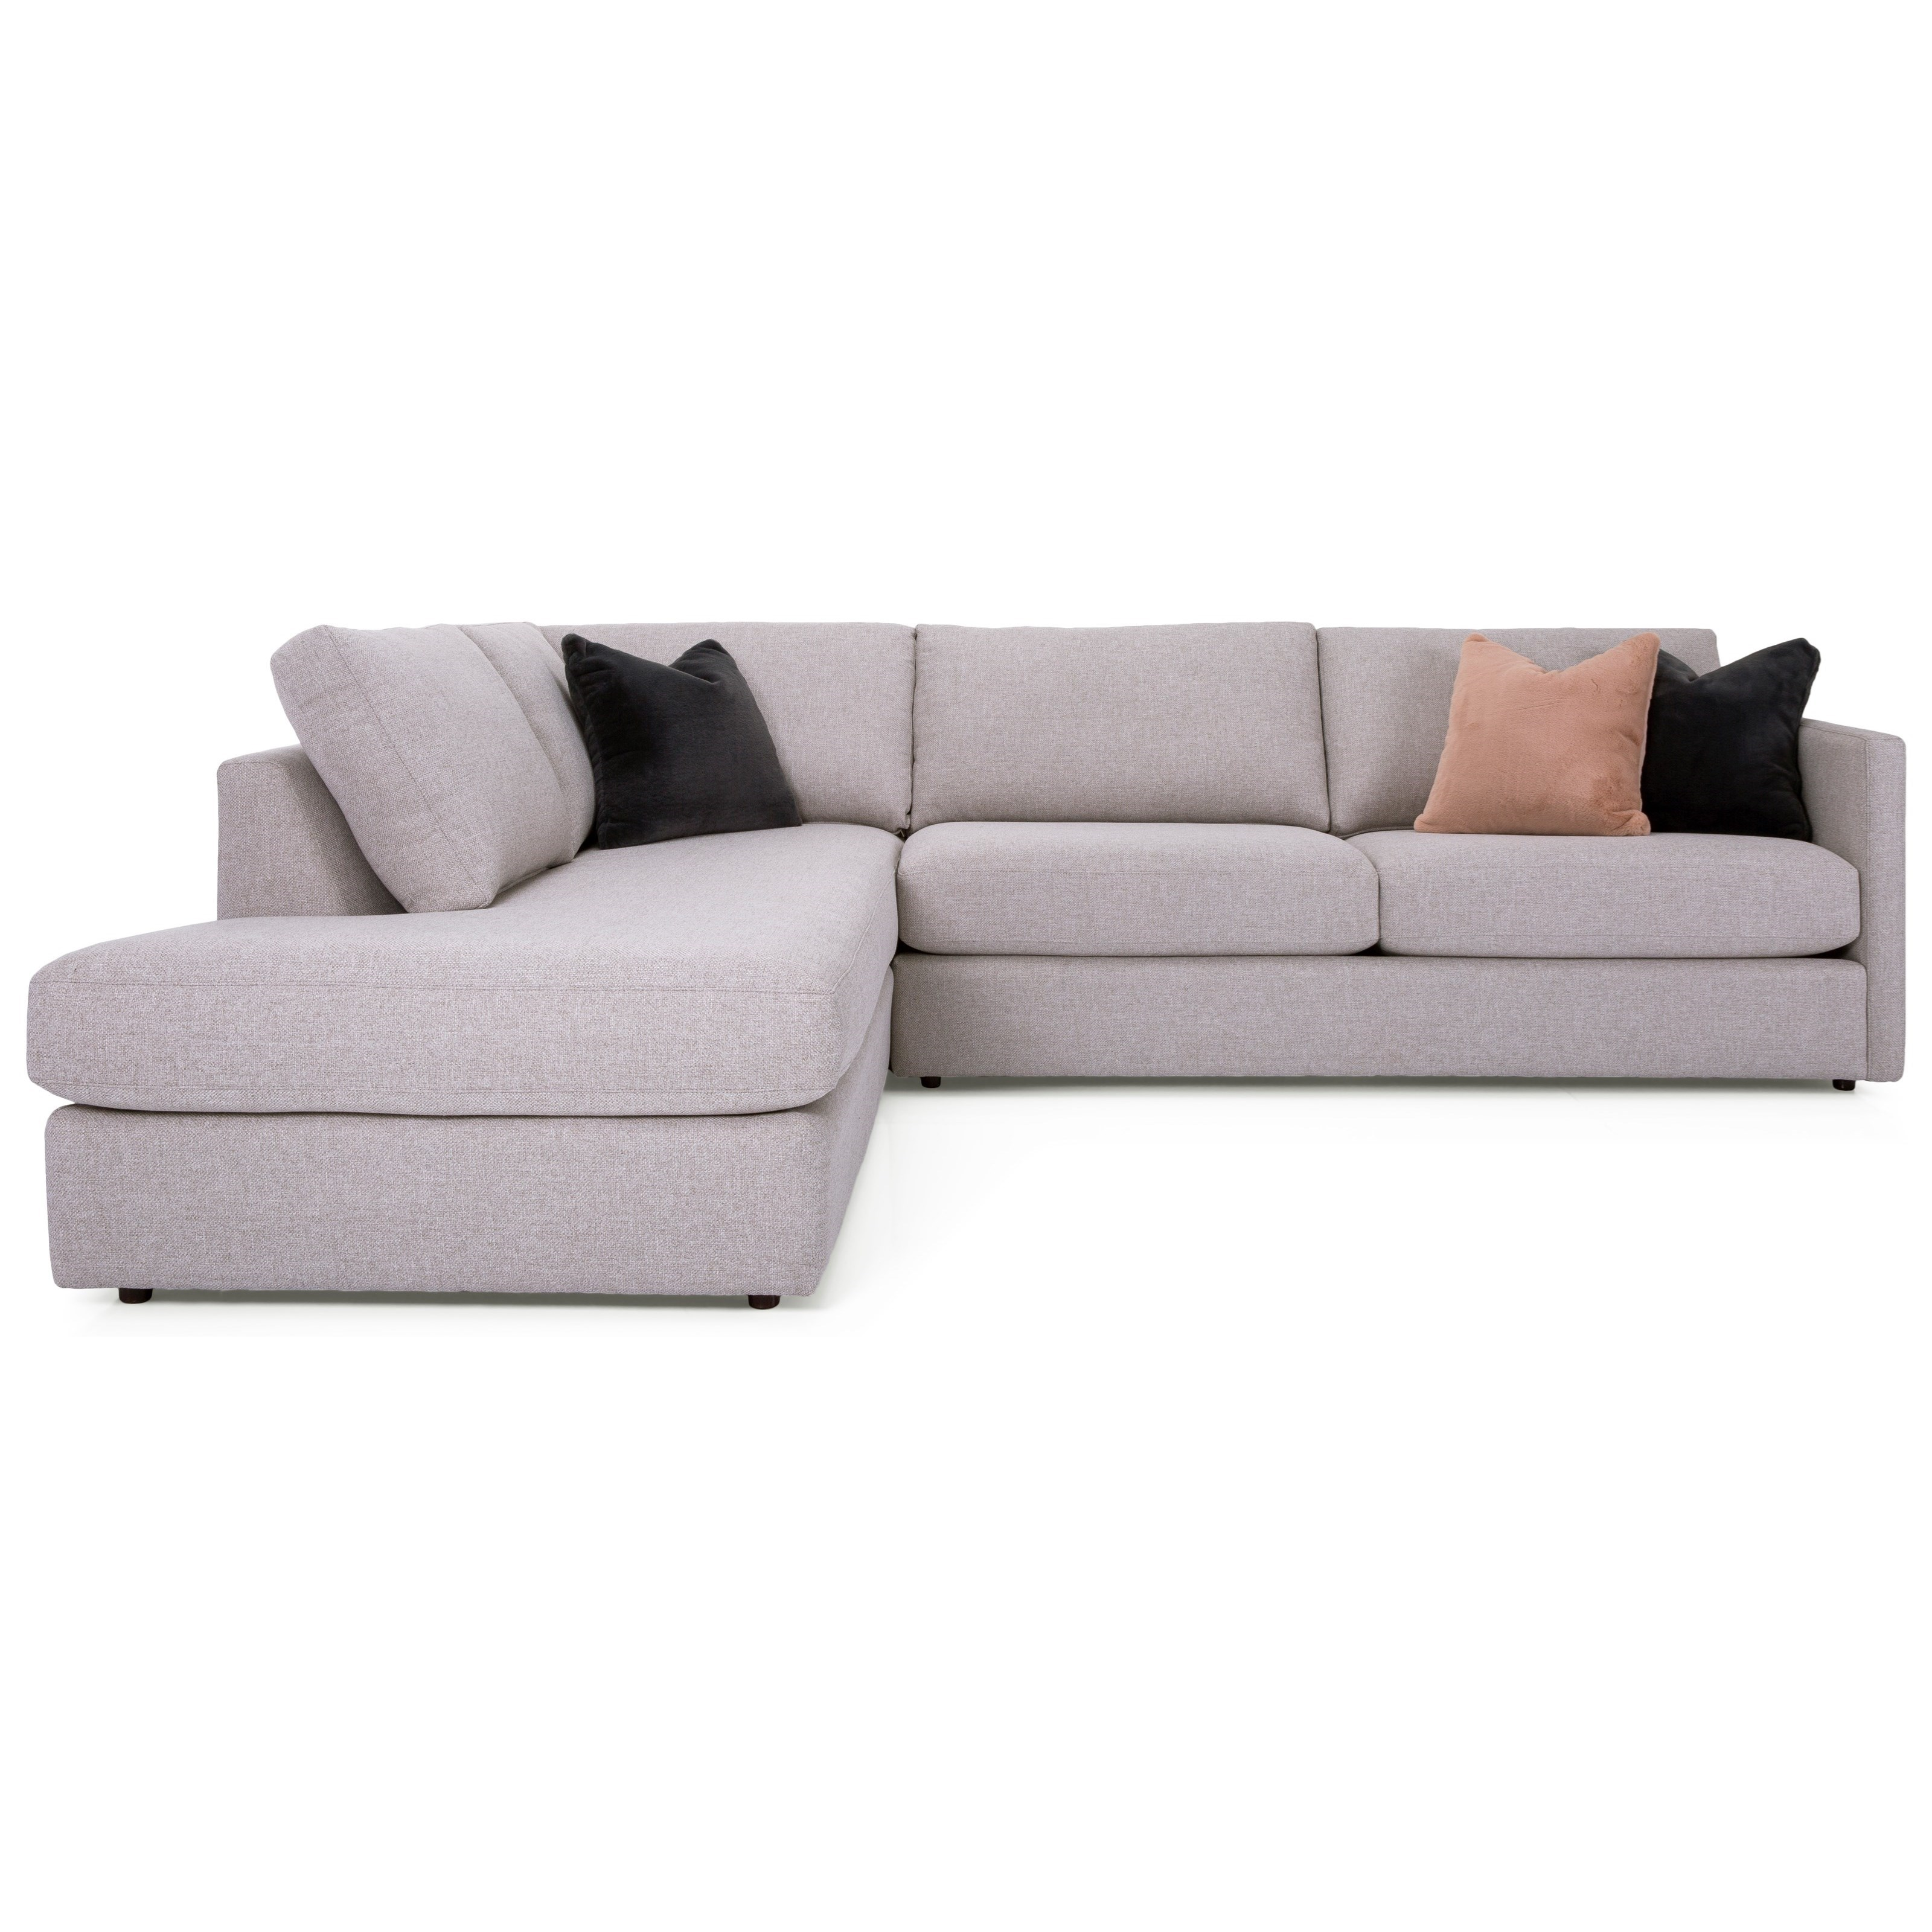 2068 Sectional with Chaise by Decor-Rest at Rooms for Less